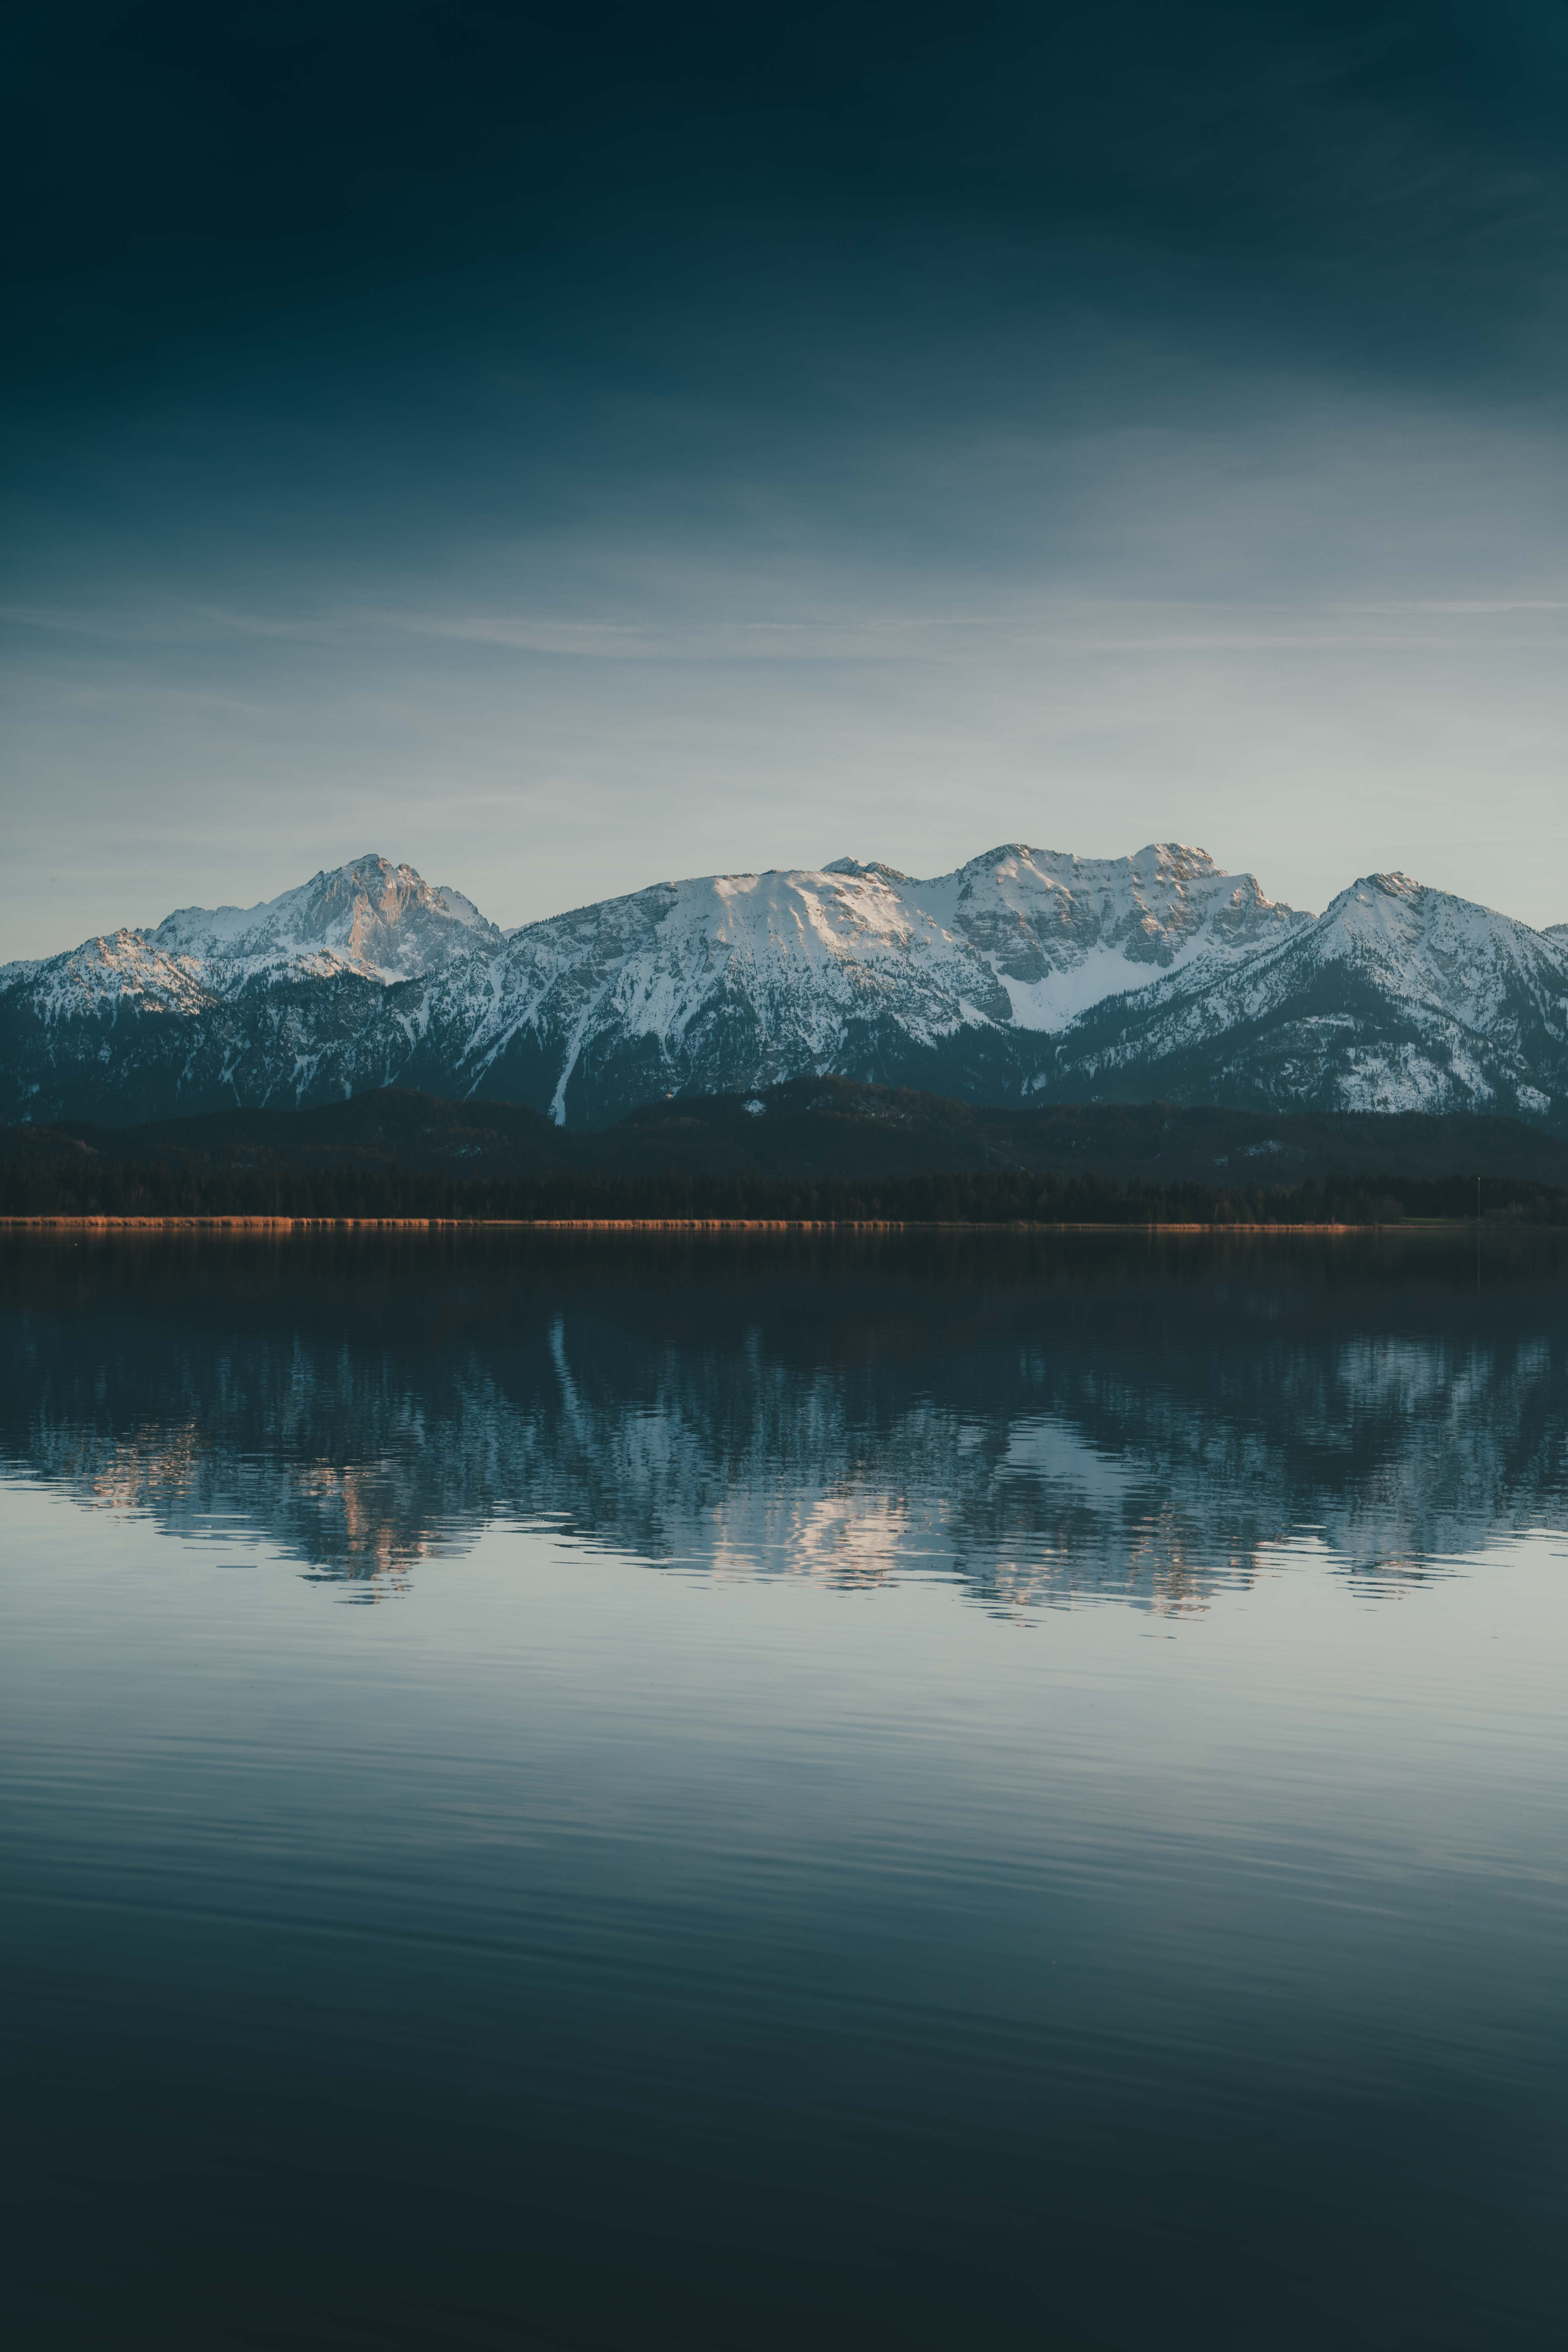 Dark reflection of Mountains in lake Hopfensee in Bavaria, Germany